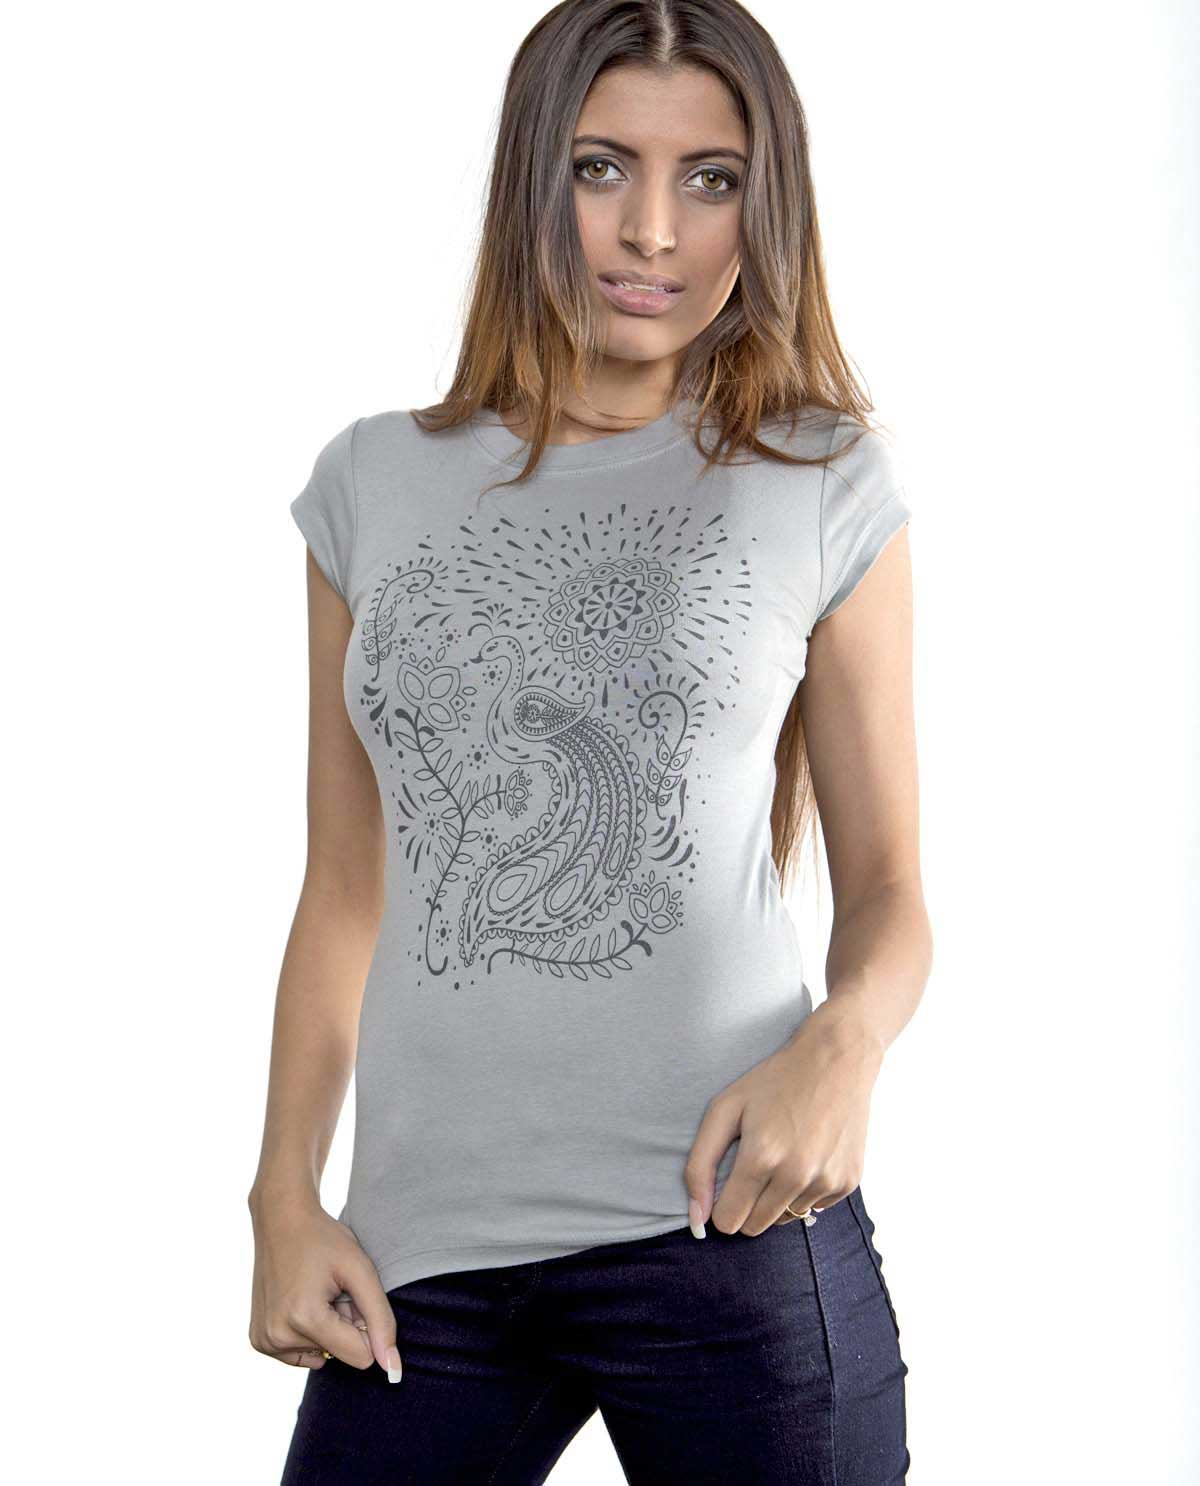 South Asian female model wearing graphic design tshirt by Bella Canvas with South Asian mendhi and peacock design.